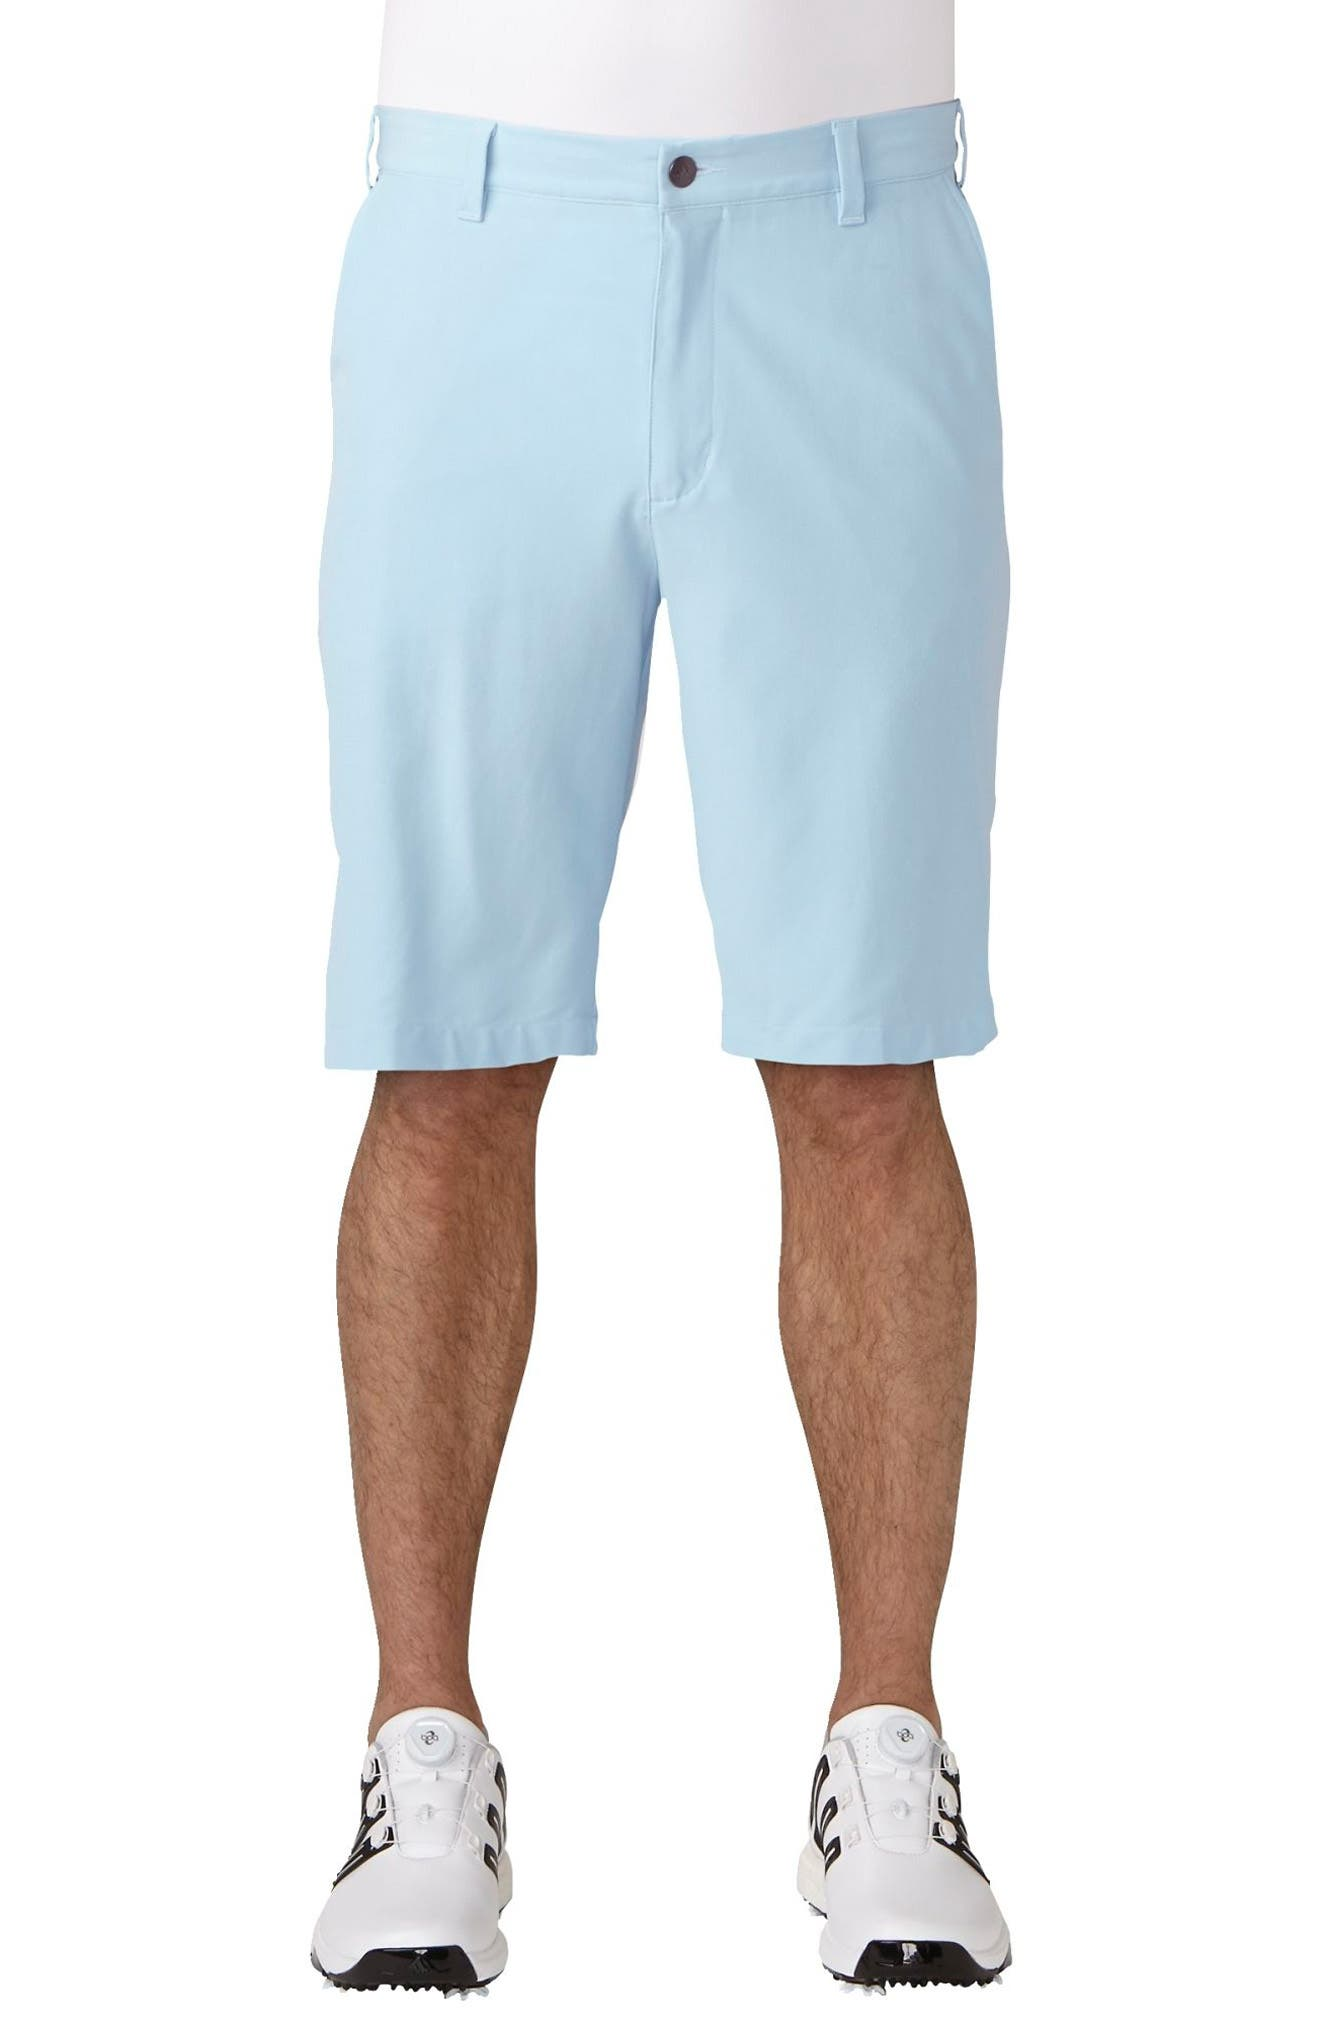 adidas 'Ultimate' Golf Shorts